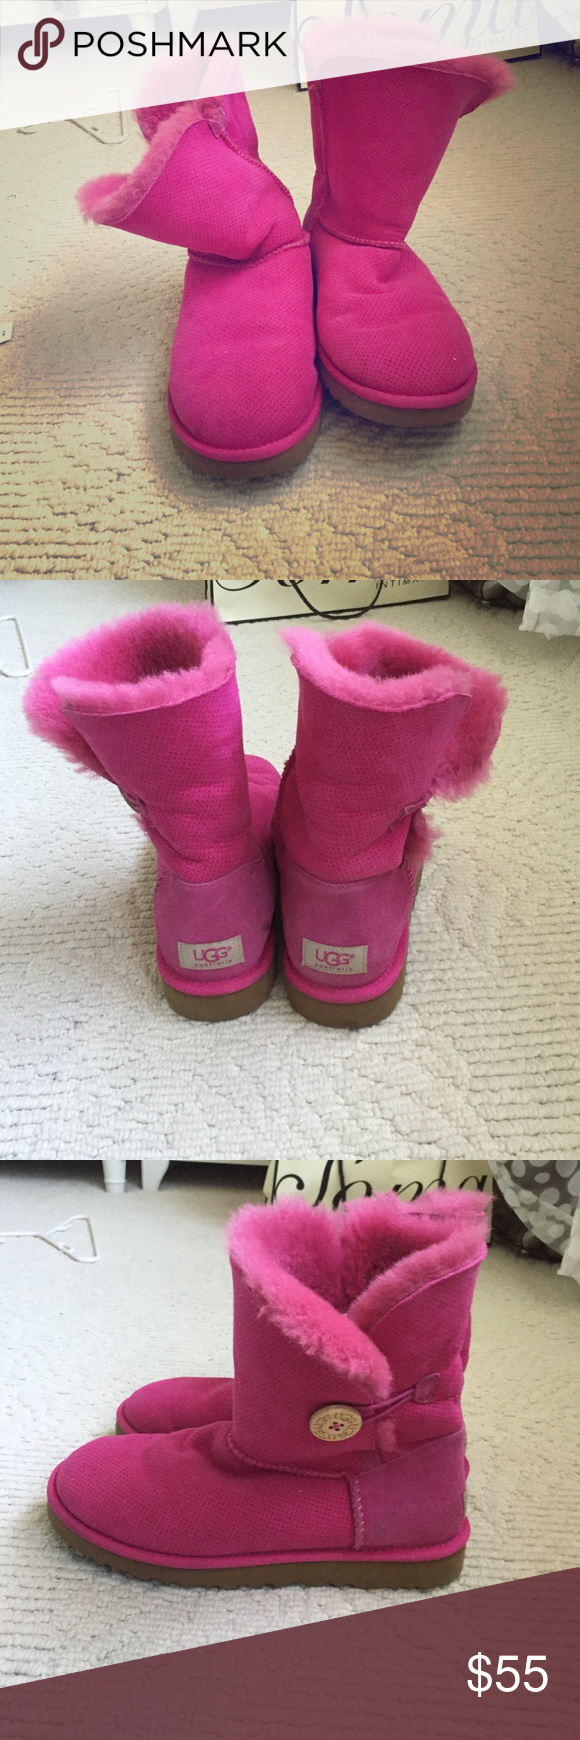 Pink short uggs Slightly worn hot pink uggs perfect for bringing bright color into winter! UGG Shoes Winter & Rain Boots